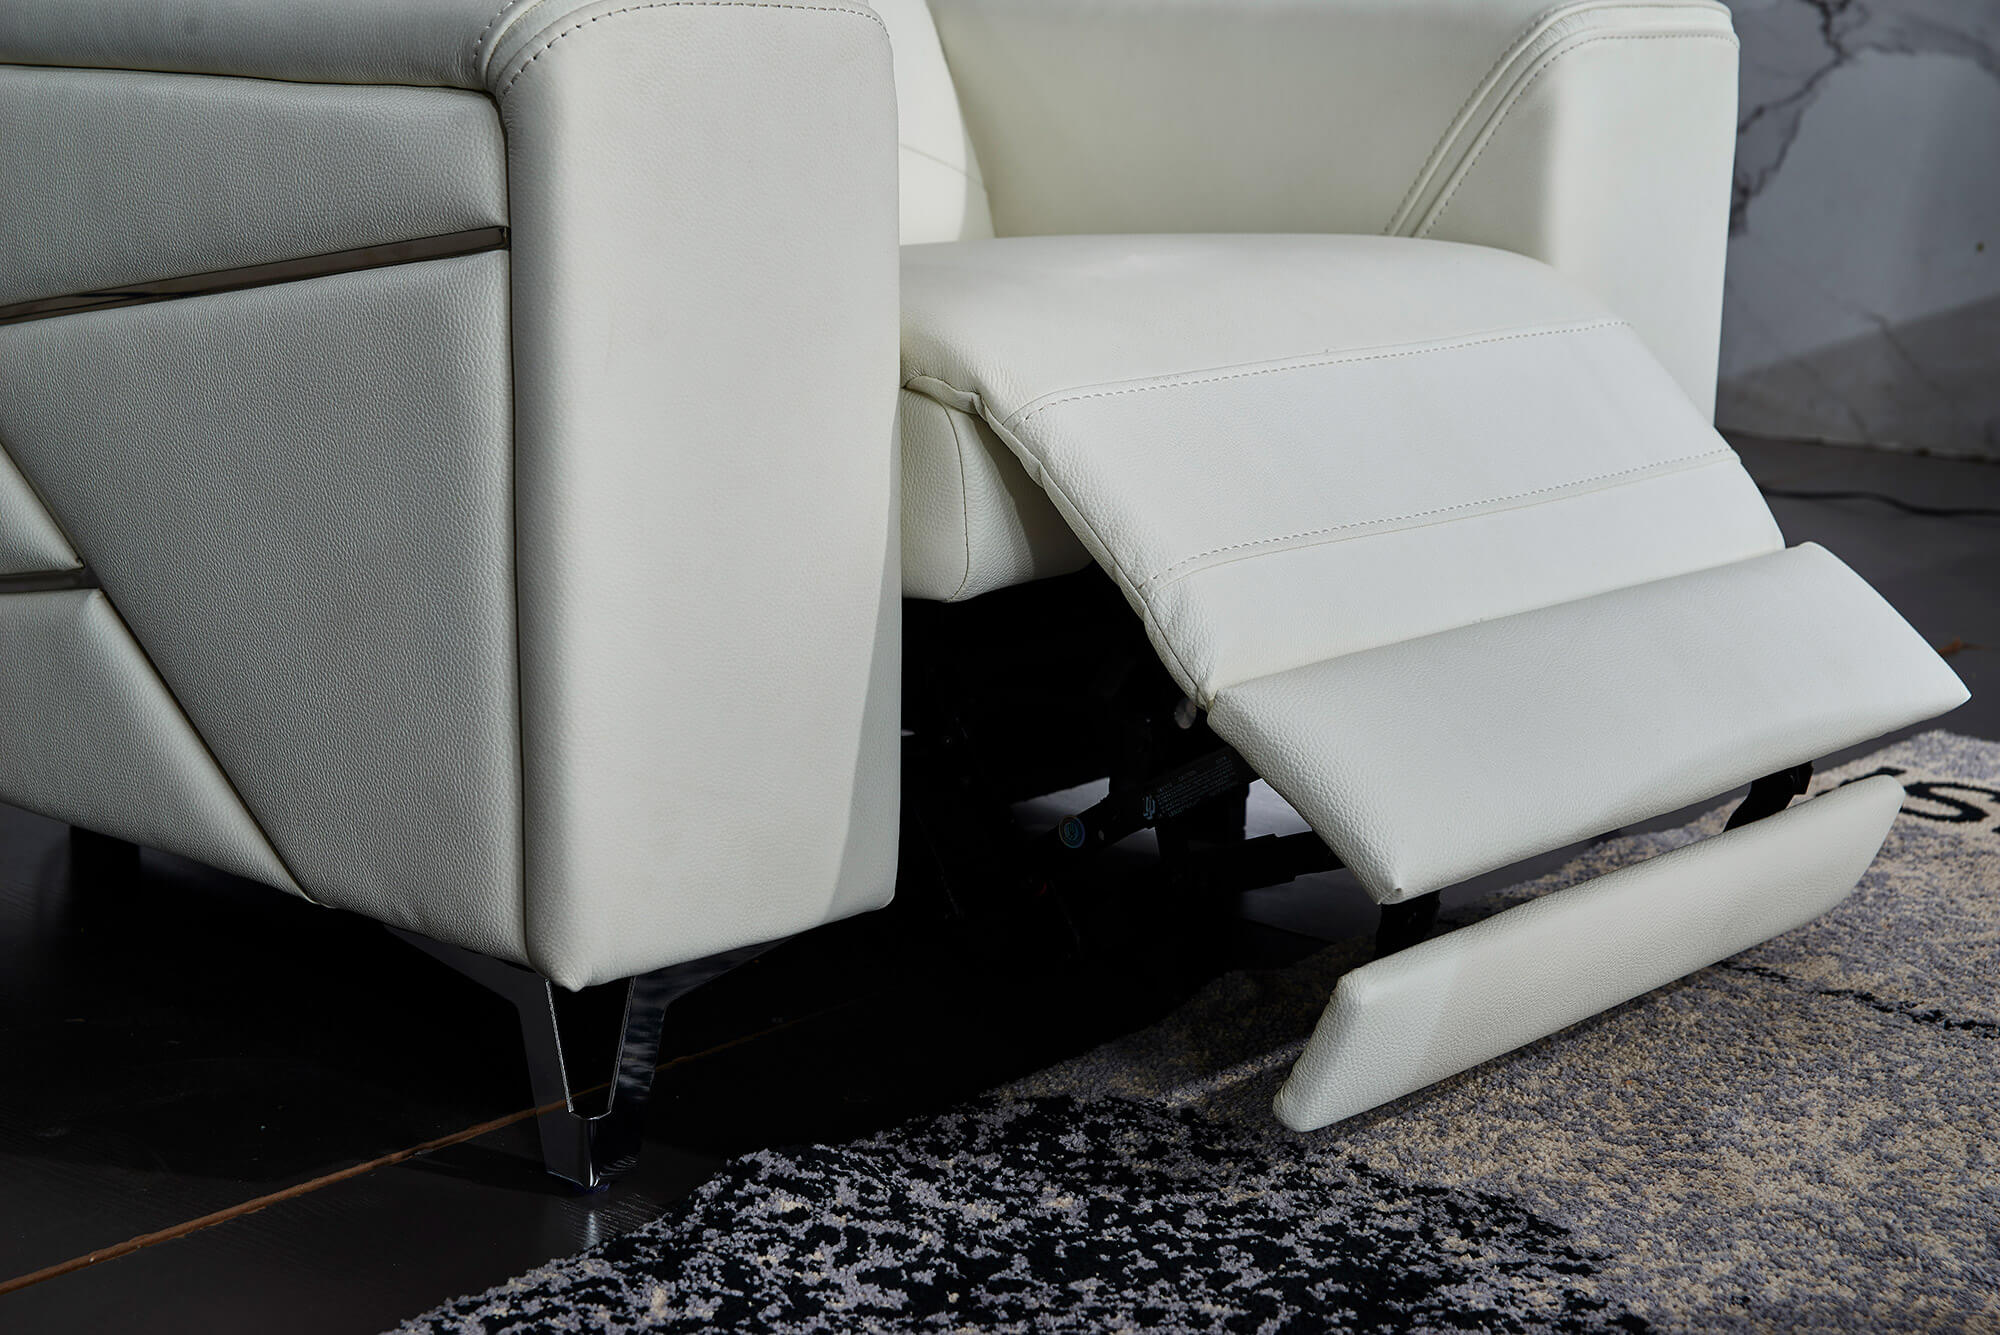 white leather electric recliner chair closeup